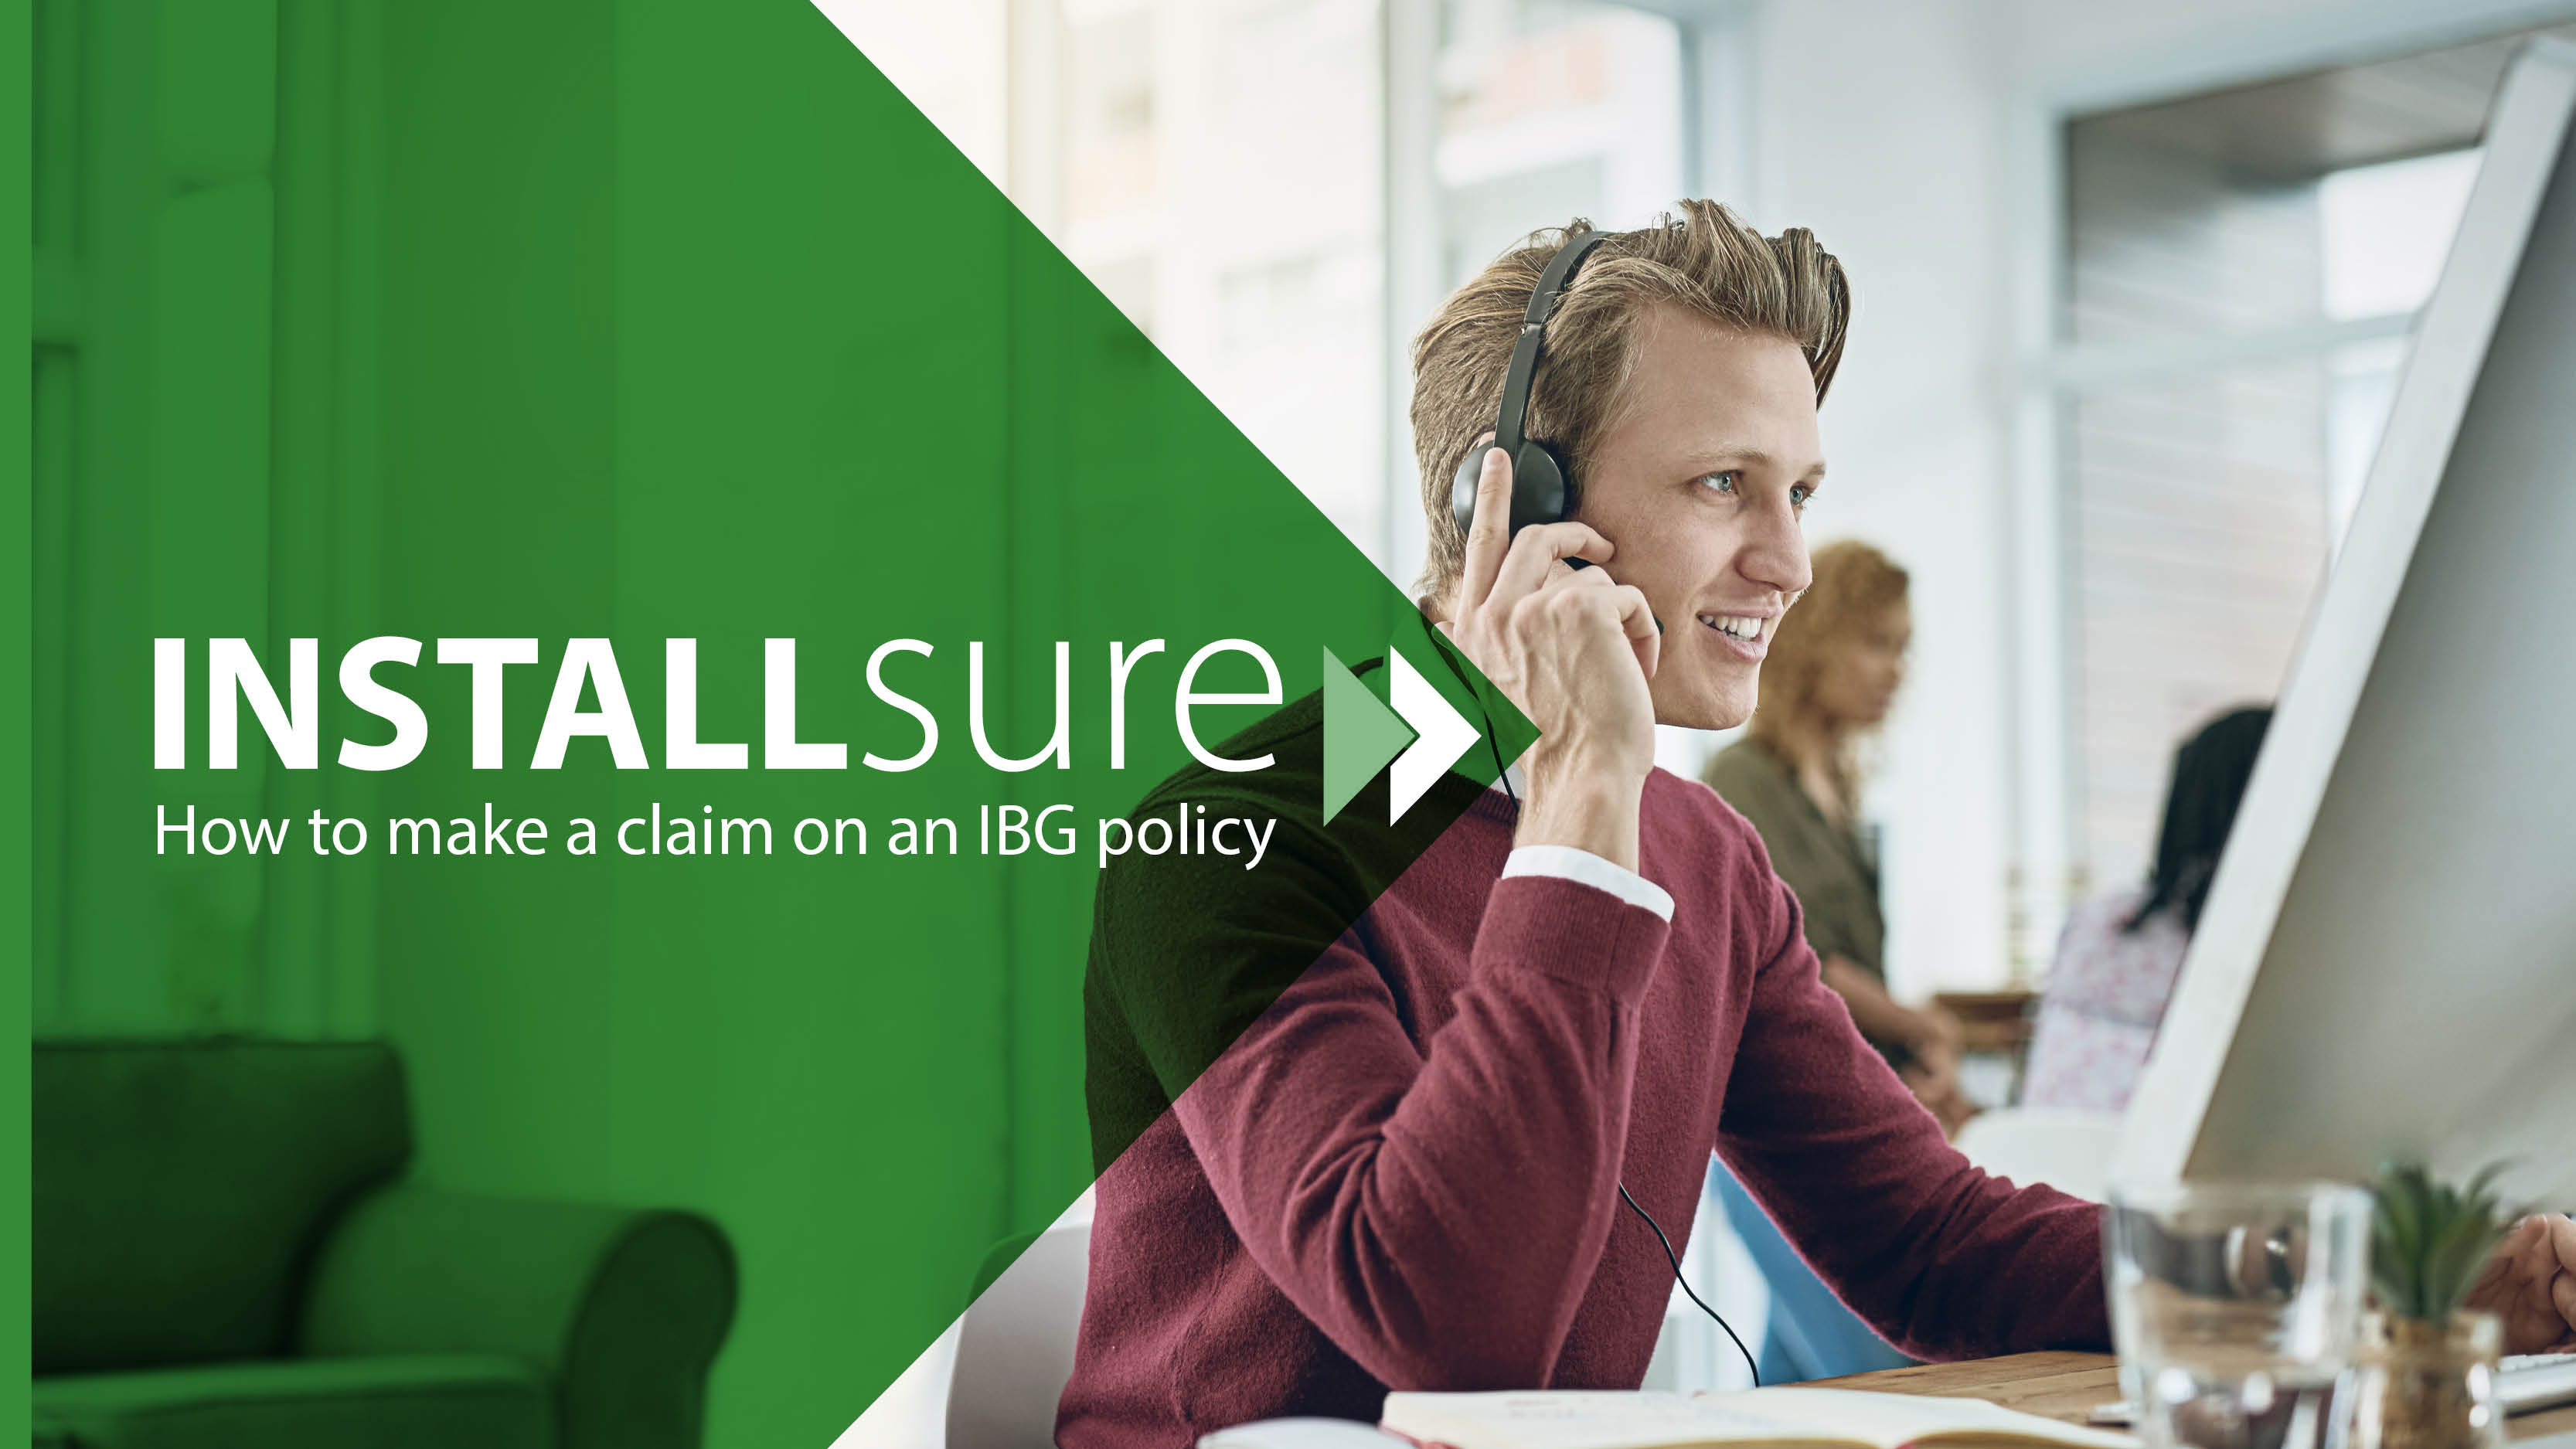 How to make a claim on an Installsure IBG policy